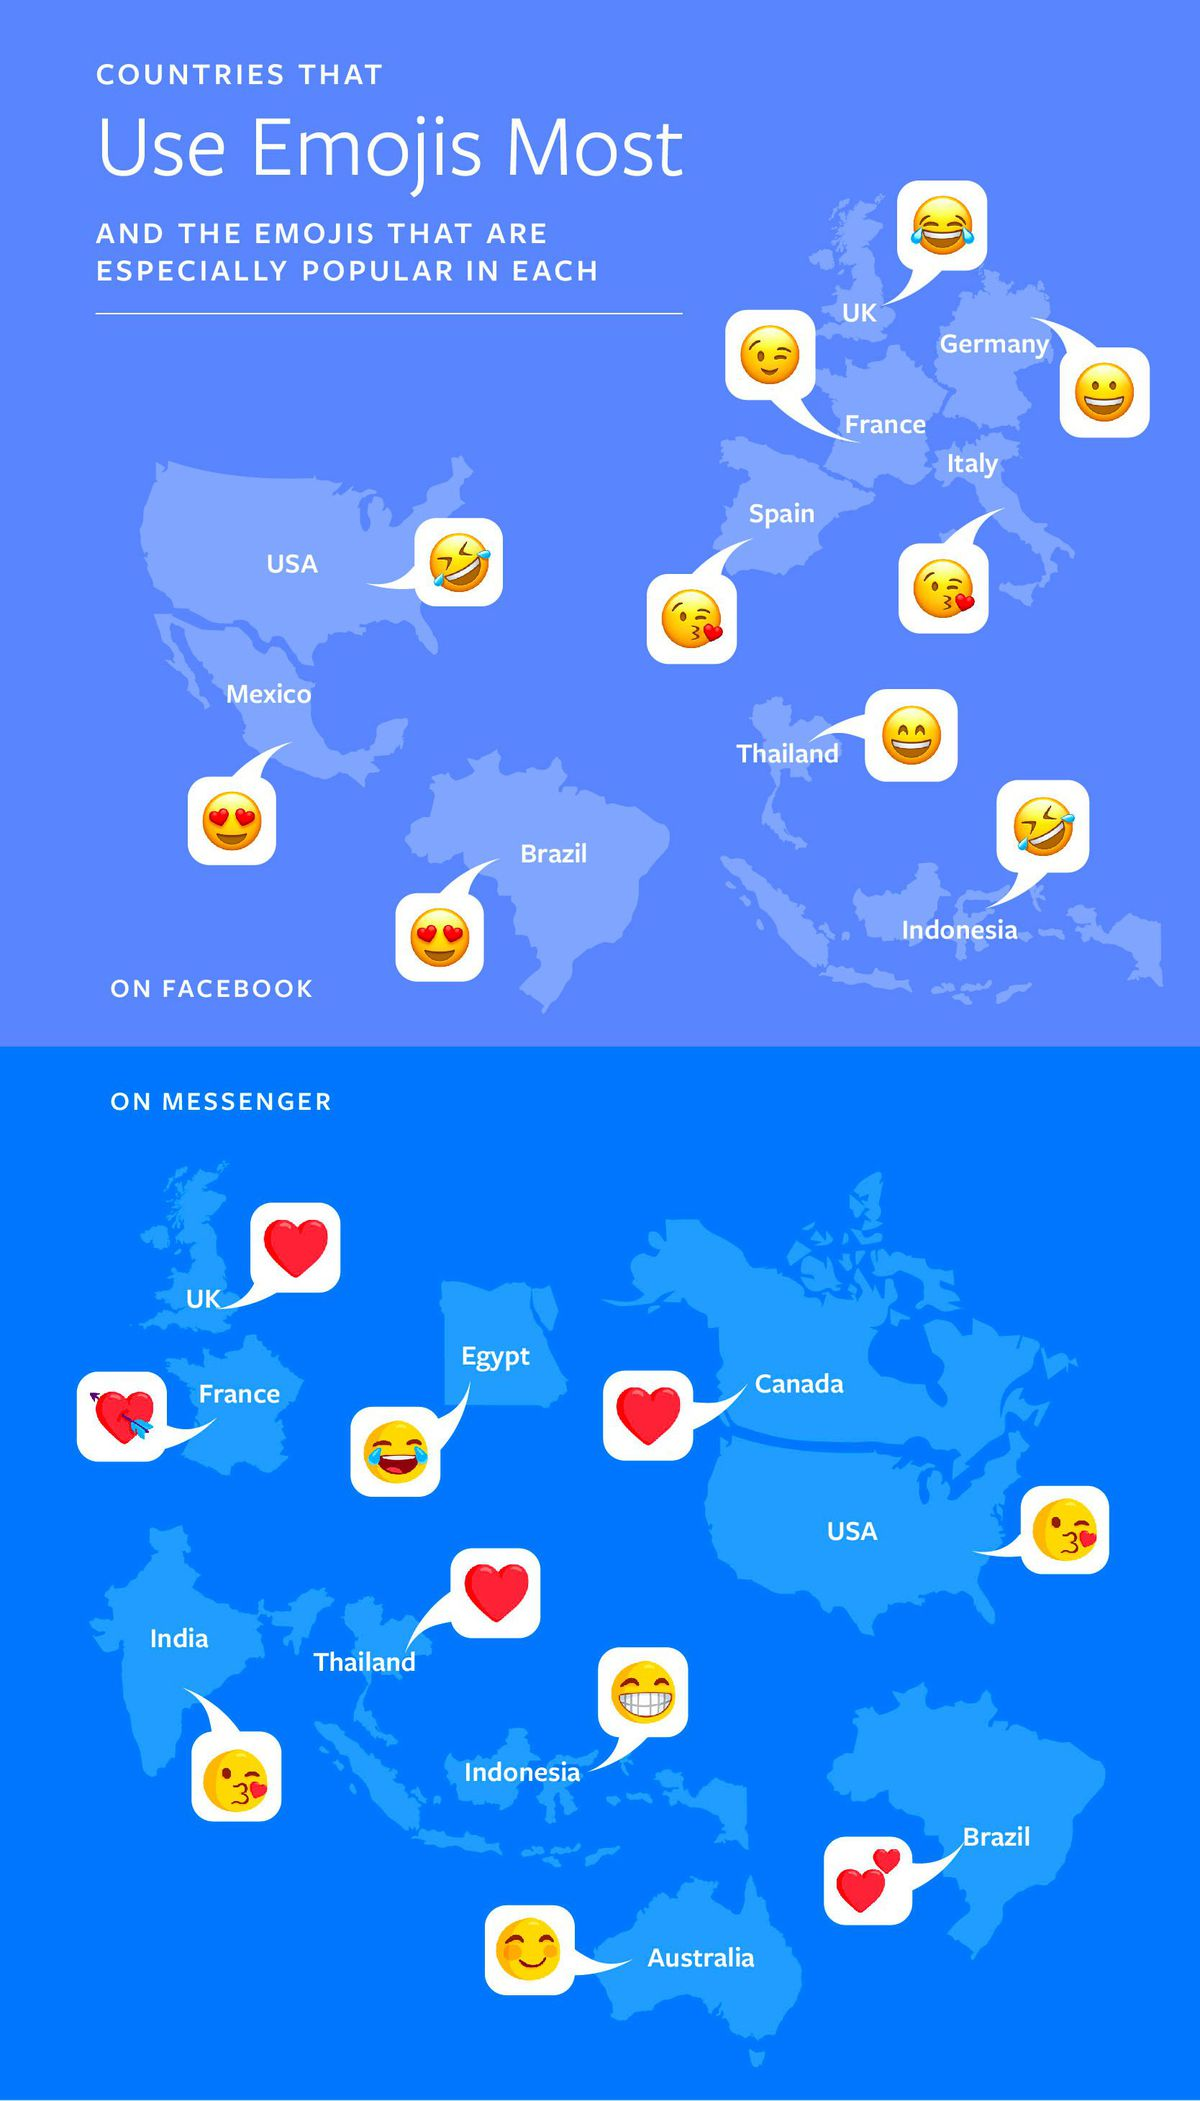 Facebook data how countries use emojis